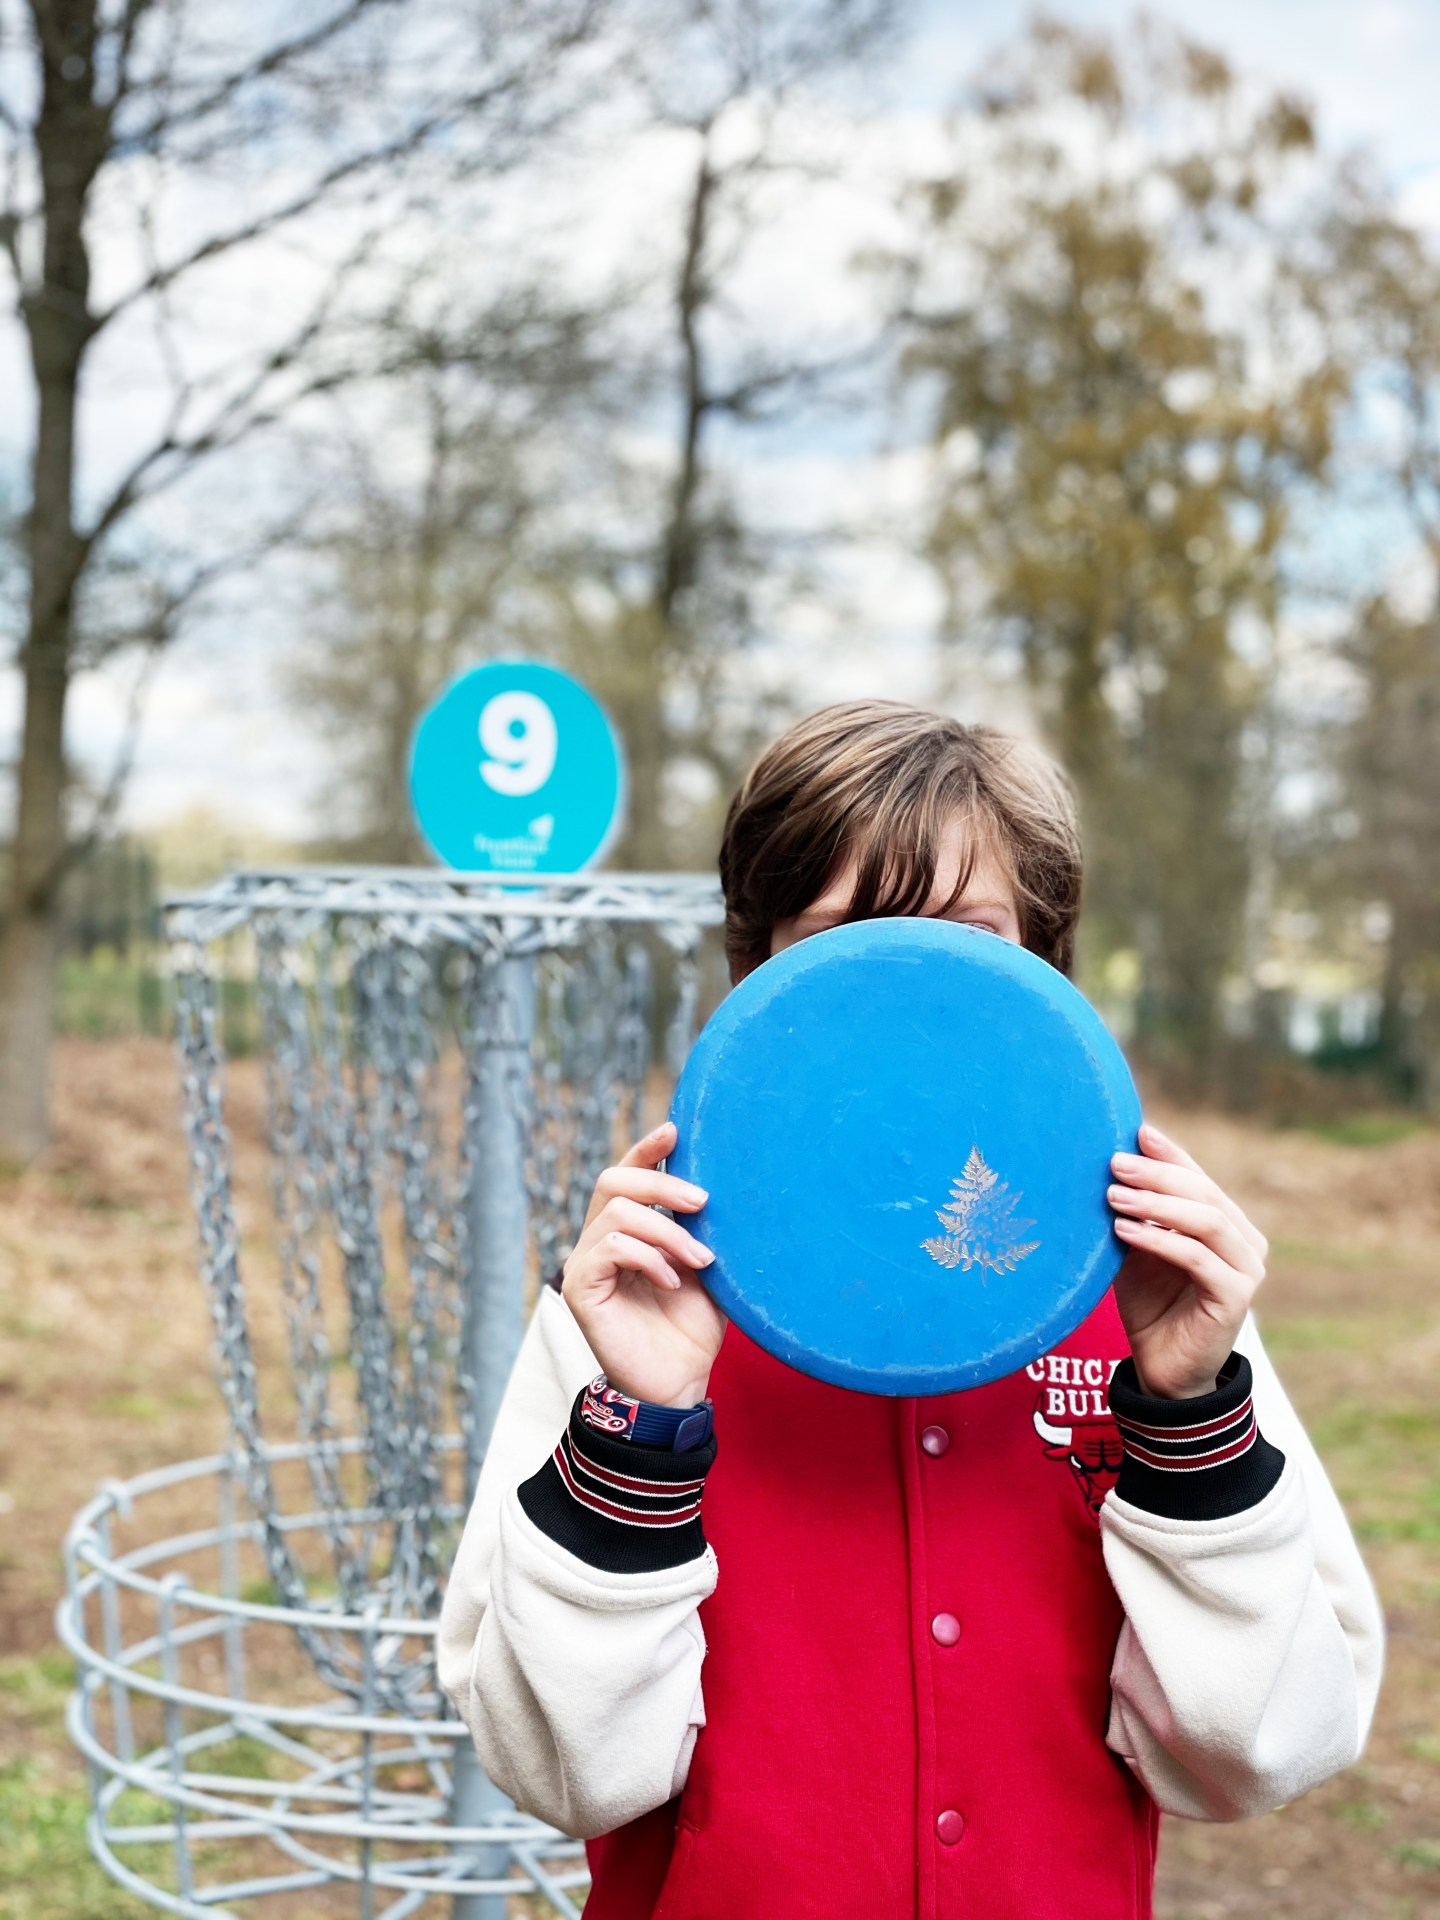 Family Friendly Disc Golf at Trentham Gardens